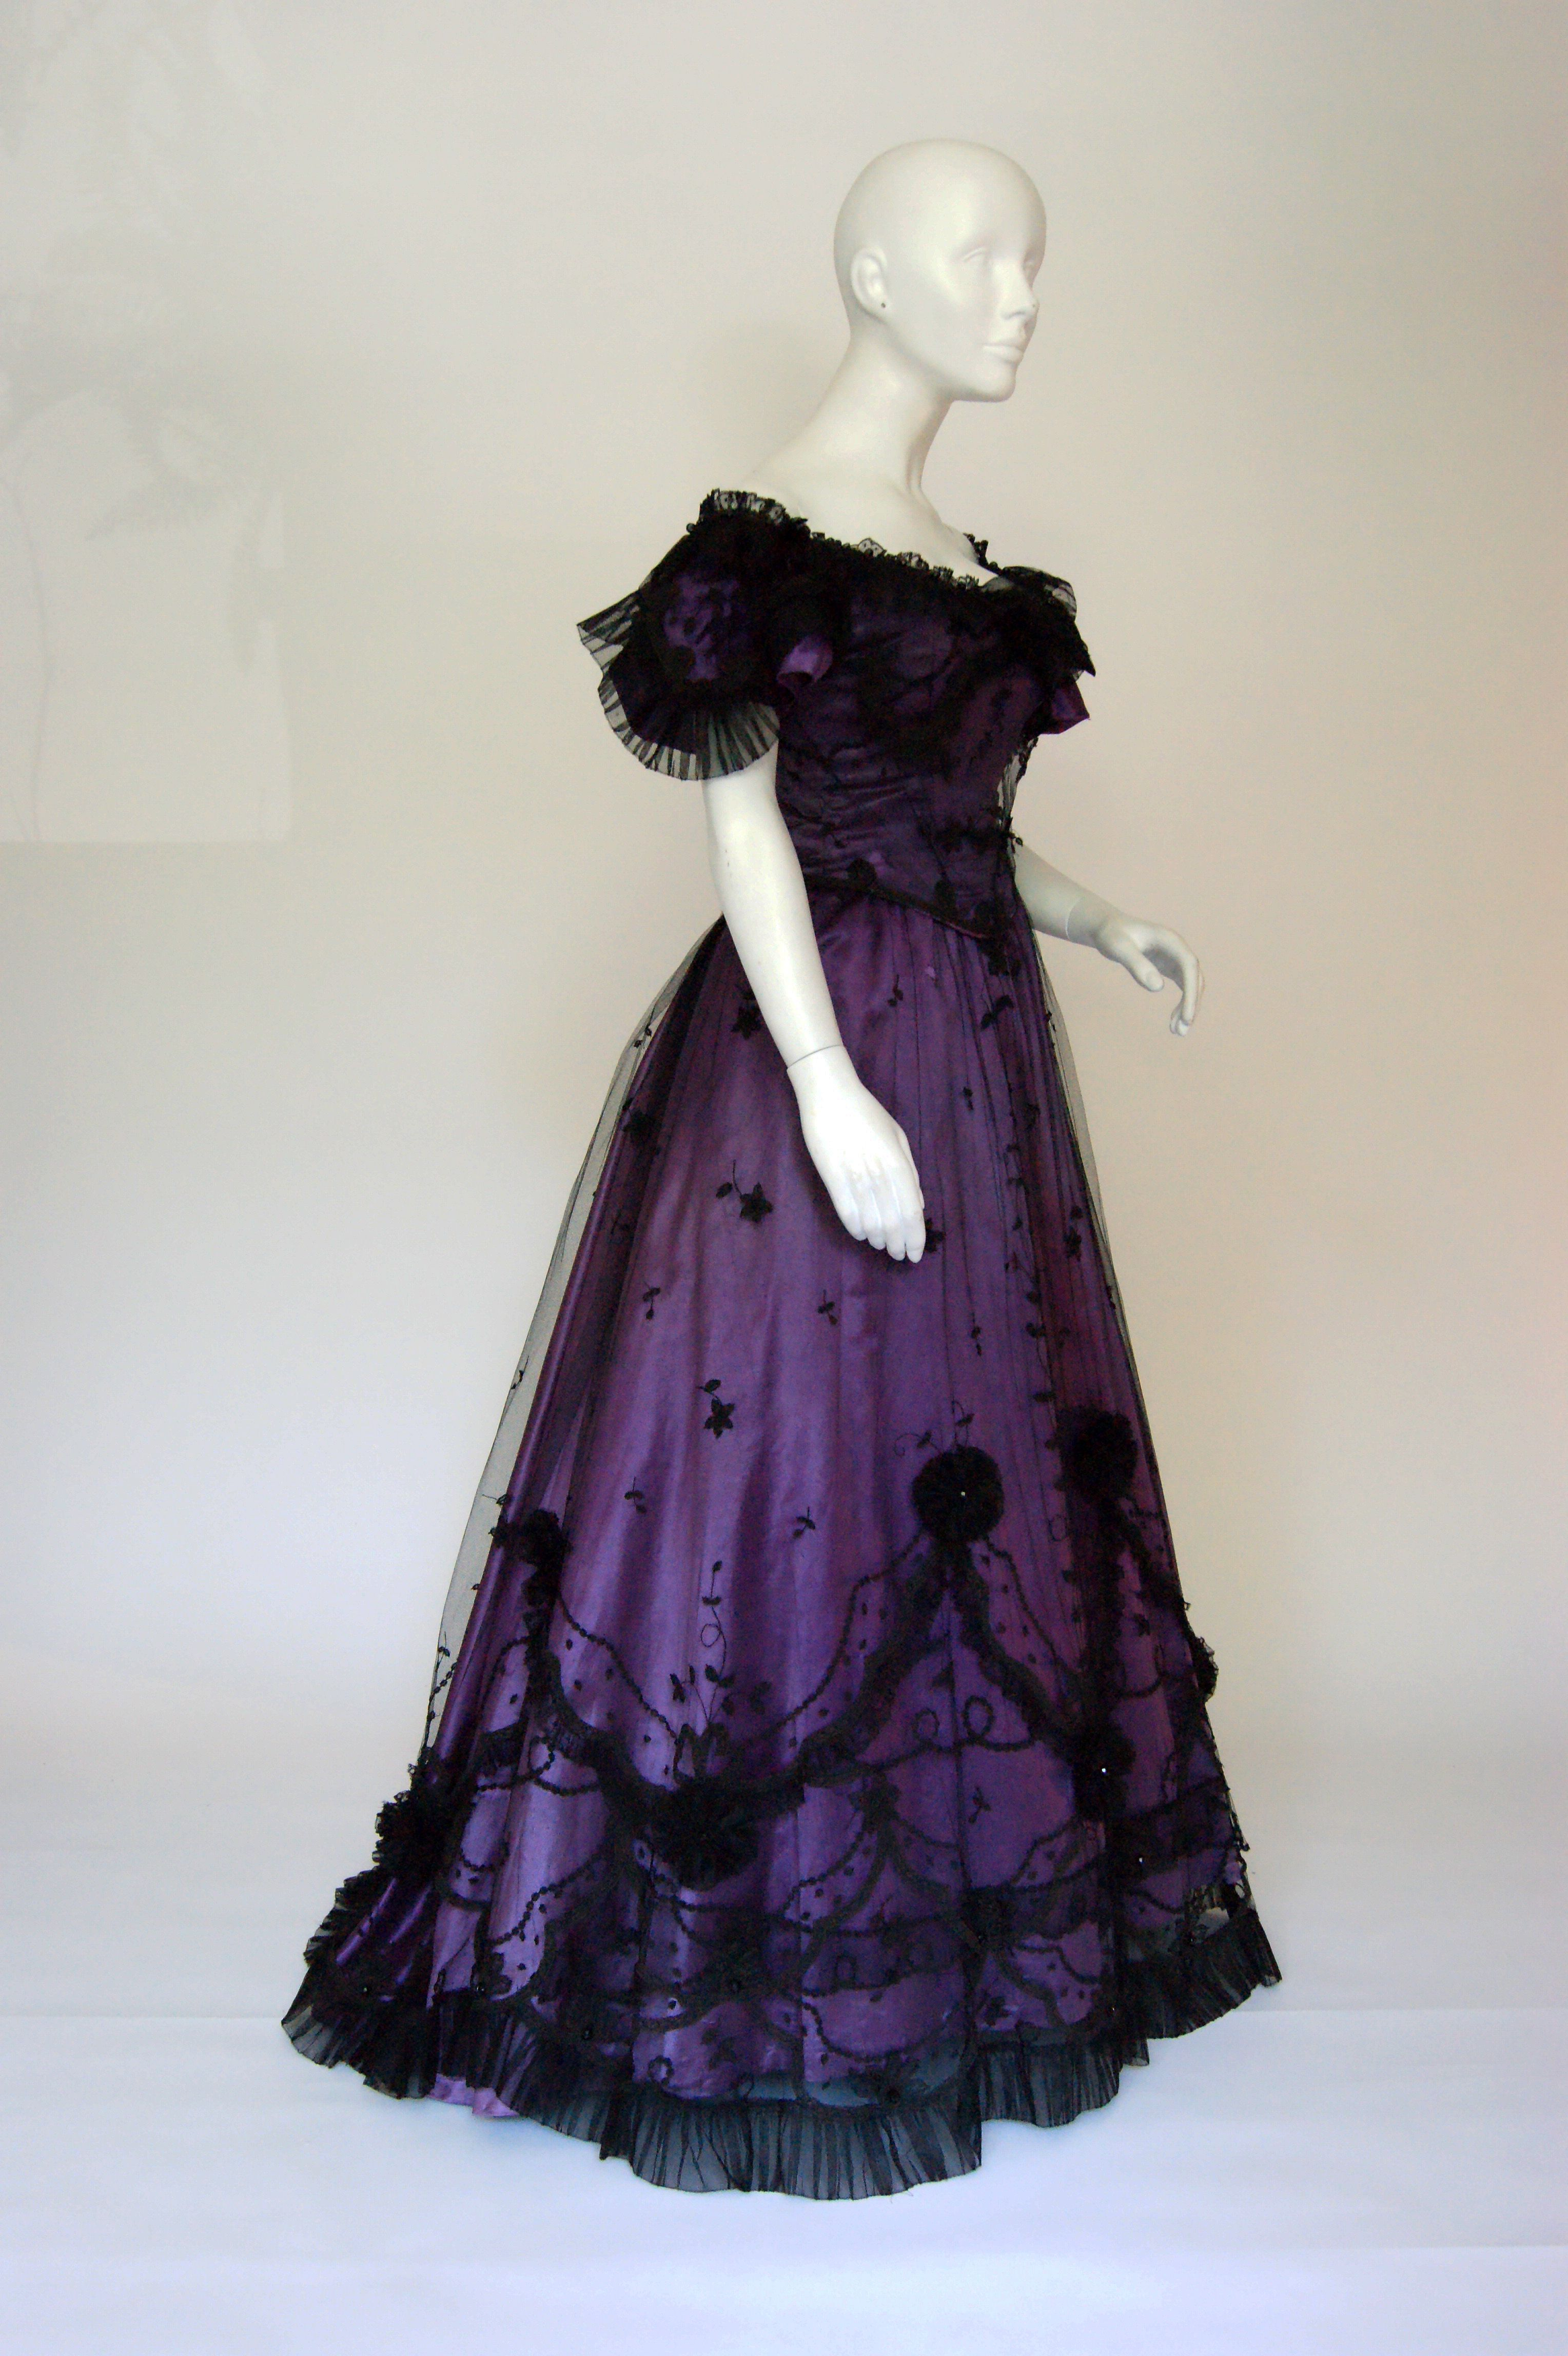 Gown Dress c.1890 | A History of Costume | Pinterest | Gowns ...